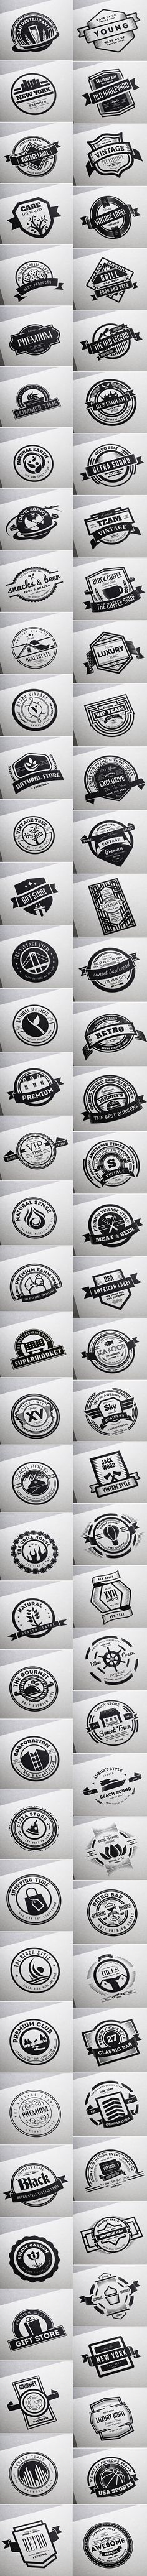 80 Vintage Labels & Badges Logos - Premium Bundle by Think Big Design, via Behance